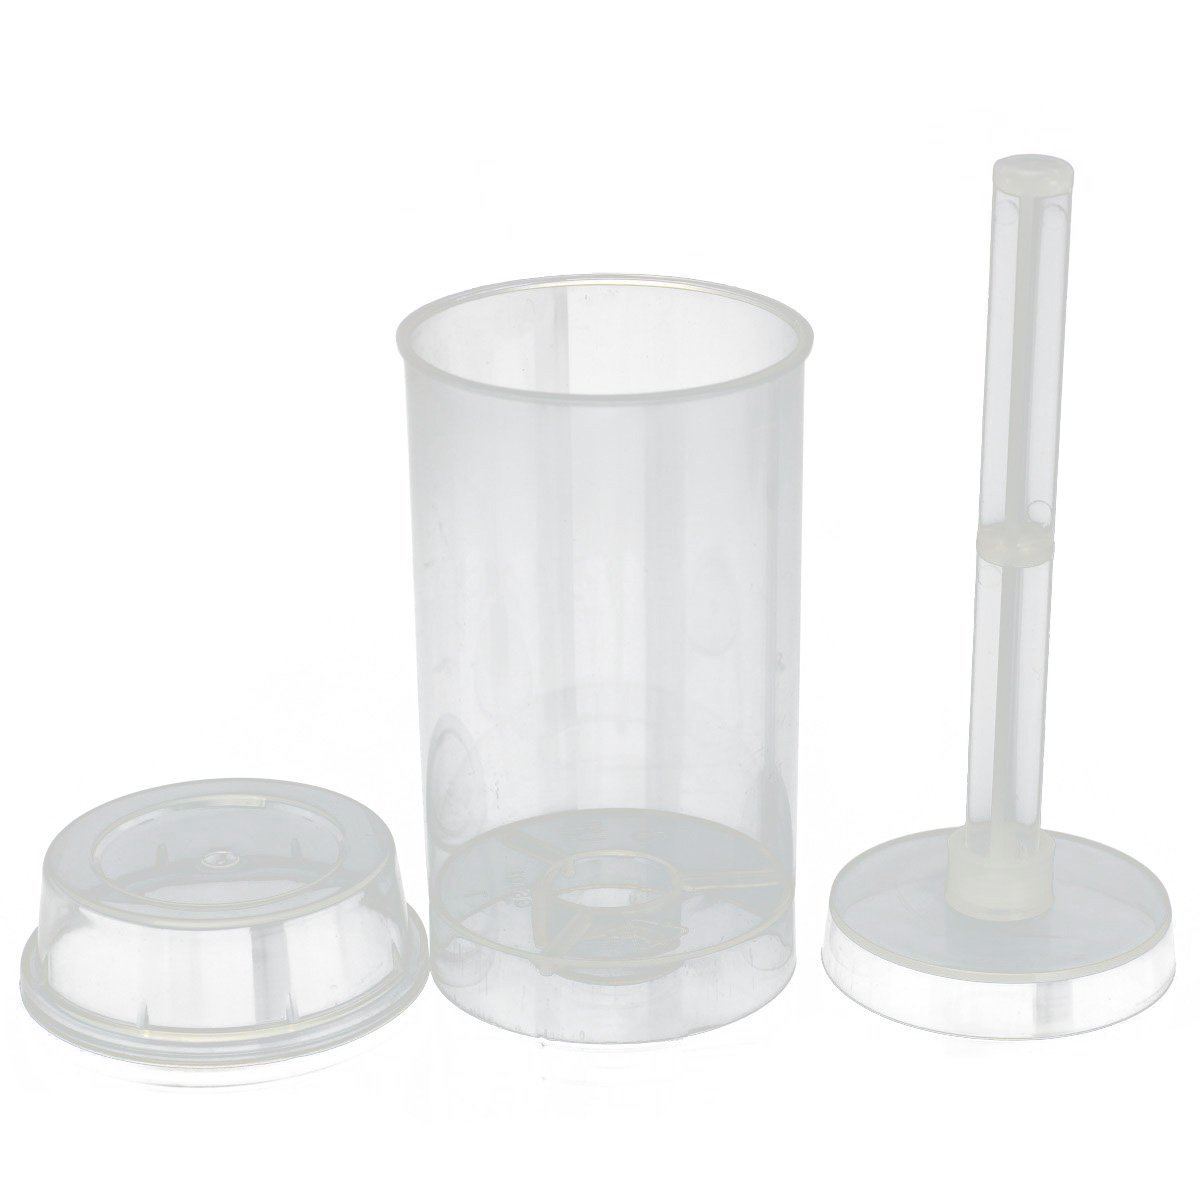 Cake mold - SODIAL(R) 10x Cakes Dessert Push Up Pop Containers Shooter Pop for Party Use SODIAL (R) SHOMAGT32032